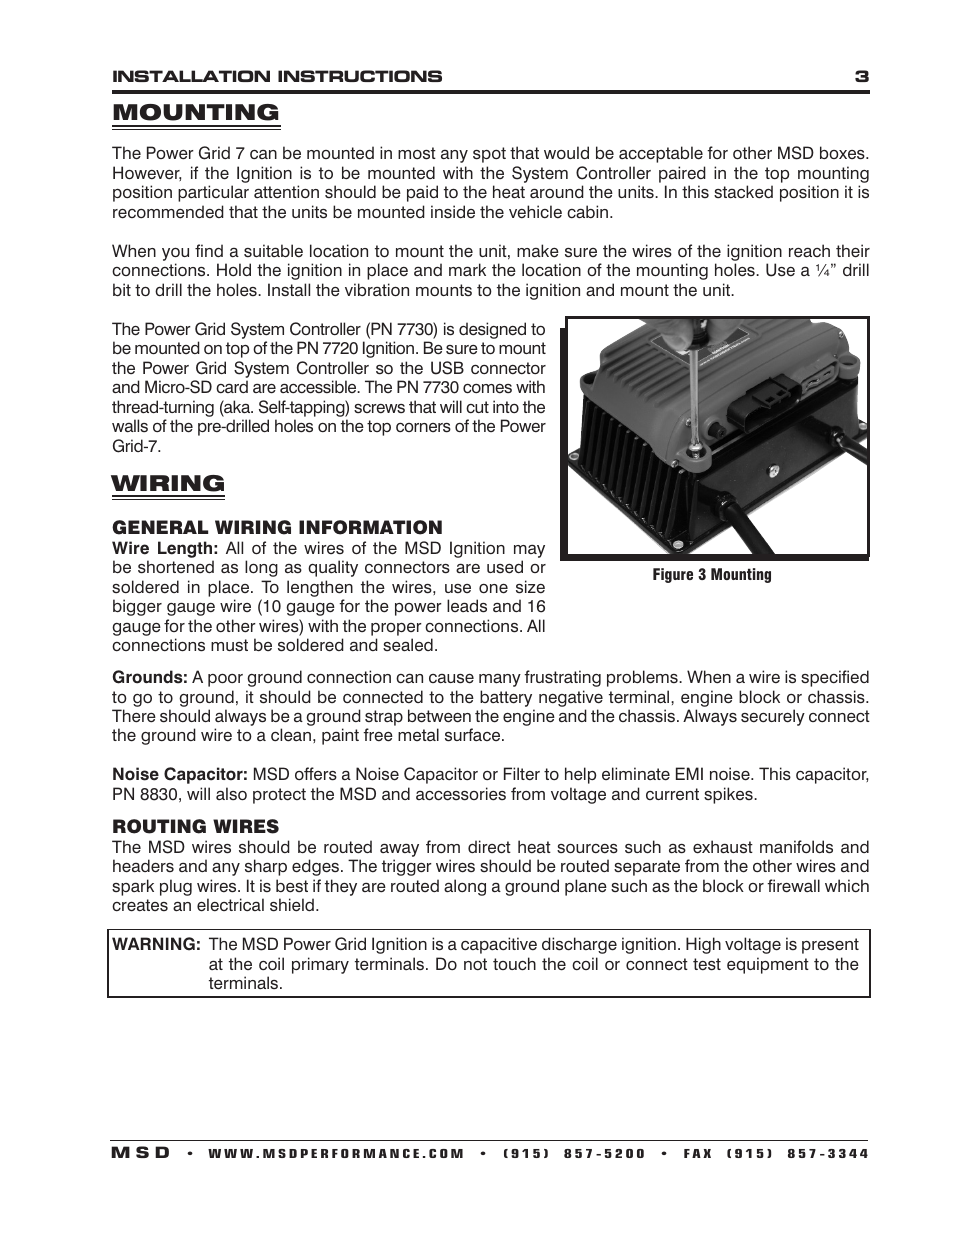 Luxury Msd Ignition 6200 Wiring Diagram Picture Collection - Wiring ...